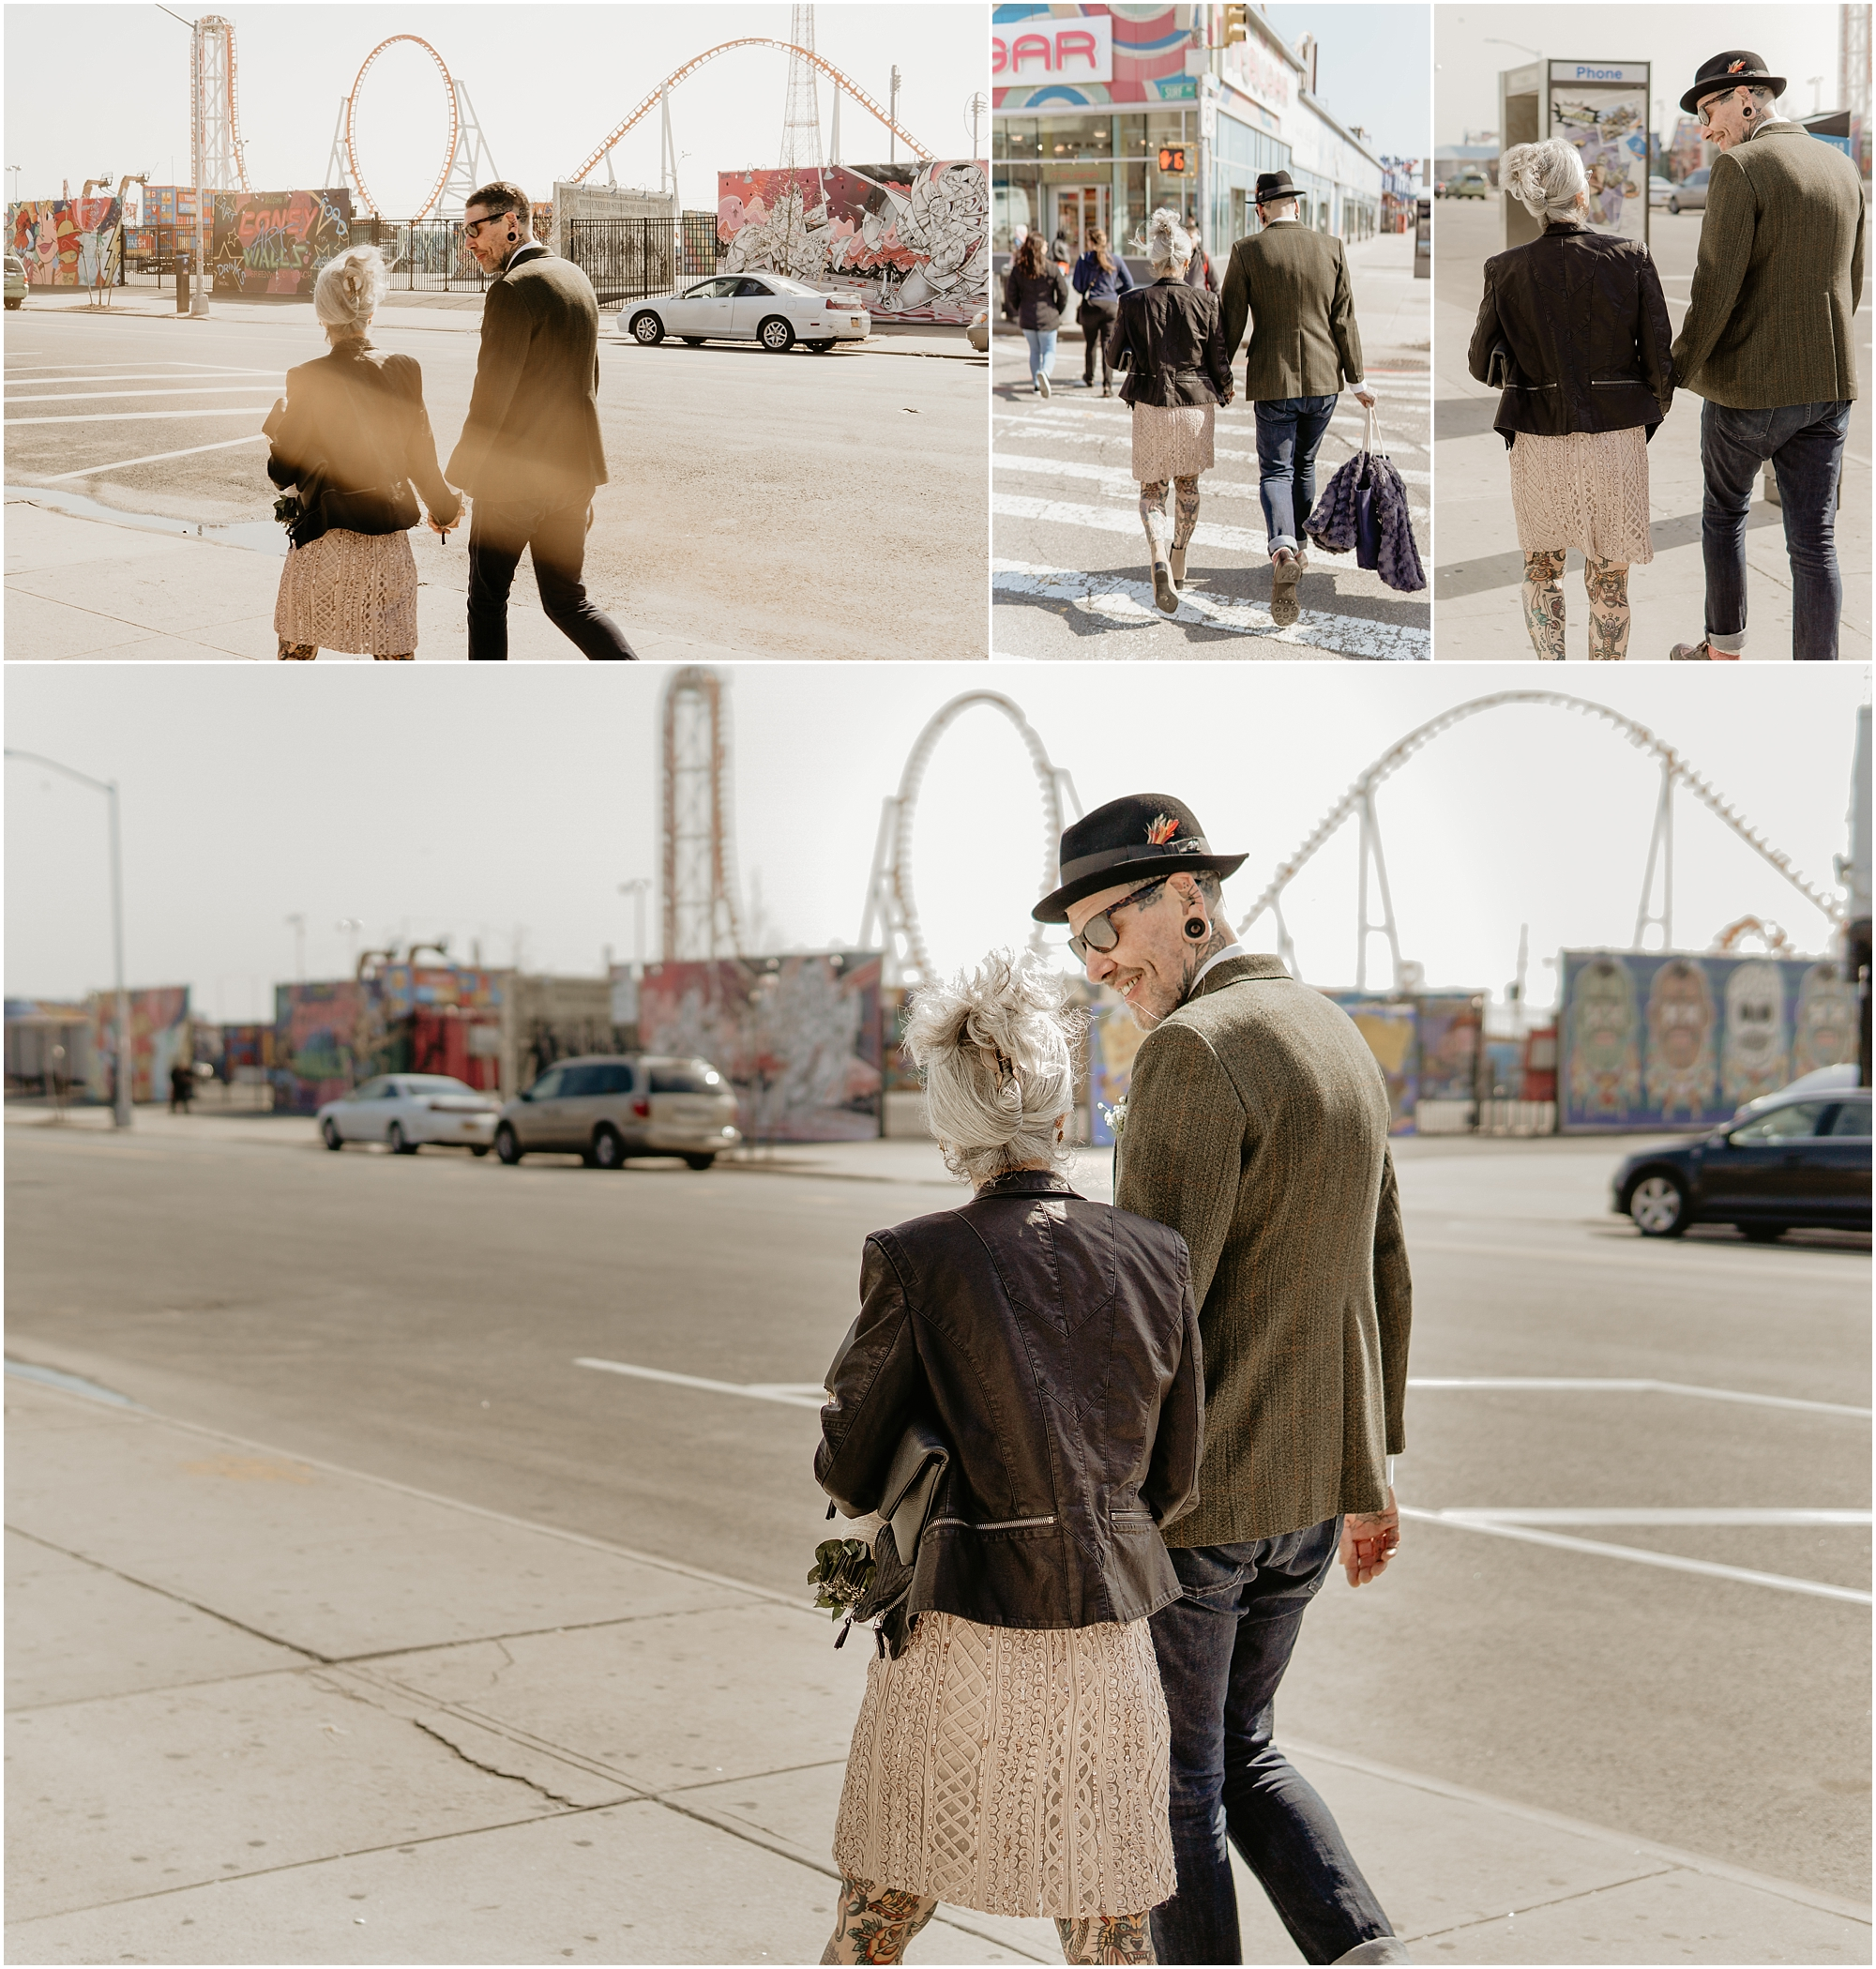 Lisa&Dan_Coney_Island_NYC_Elopement_Jeanette Joy Photography_April 2018_0028.jpg